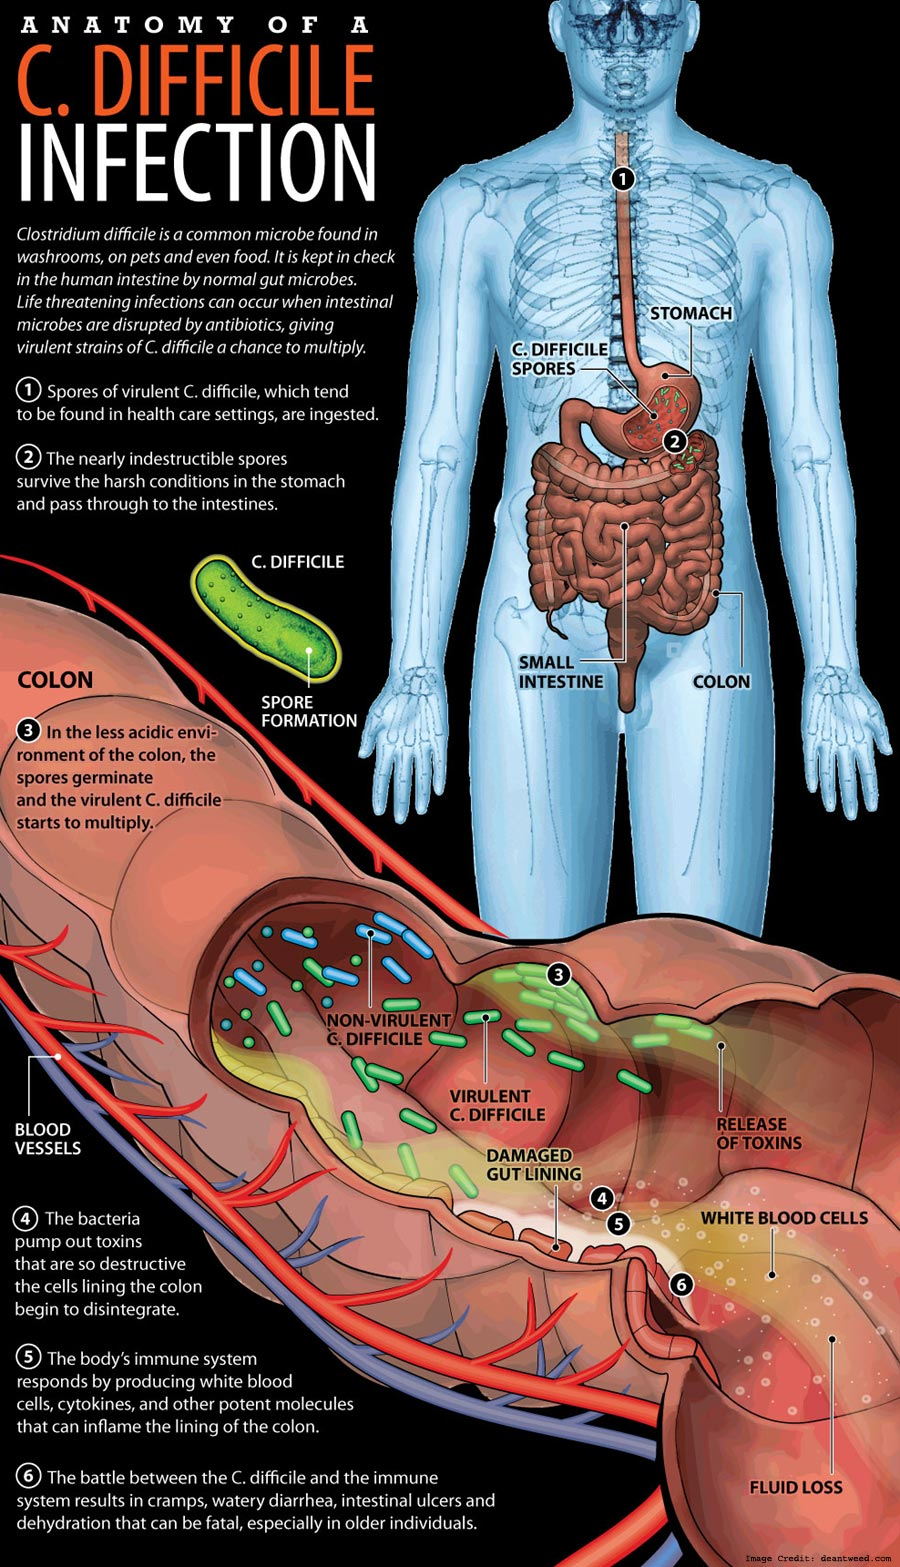 clostridium difficile infection causes and treatment Clostridium difficile–associated disease: diagnosis, prevention, treatment, and  clostridium difficile infection in  treatment of clostridium difficile.